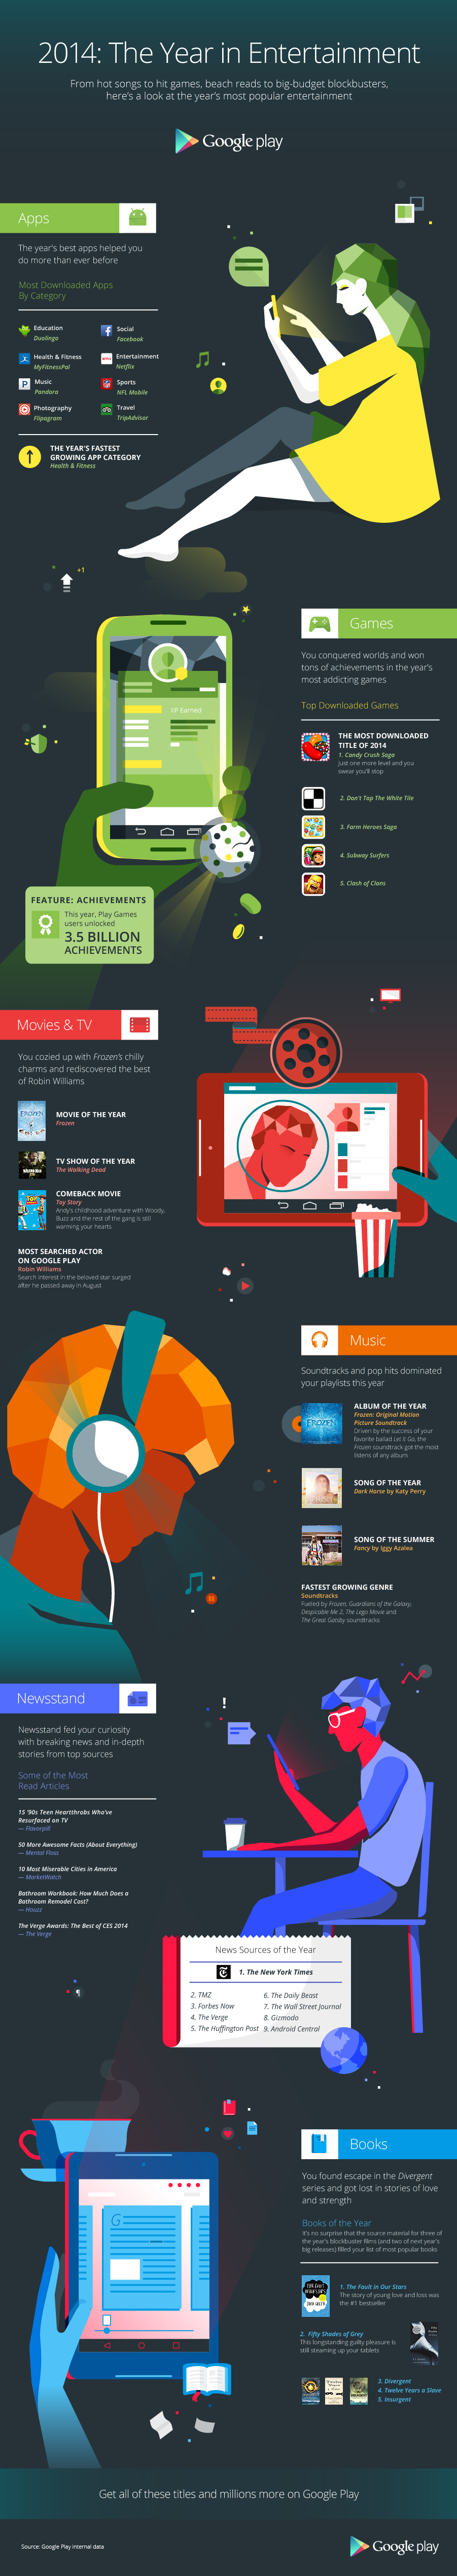 Google Announces Top Reading Apps and eBooks of 2014